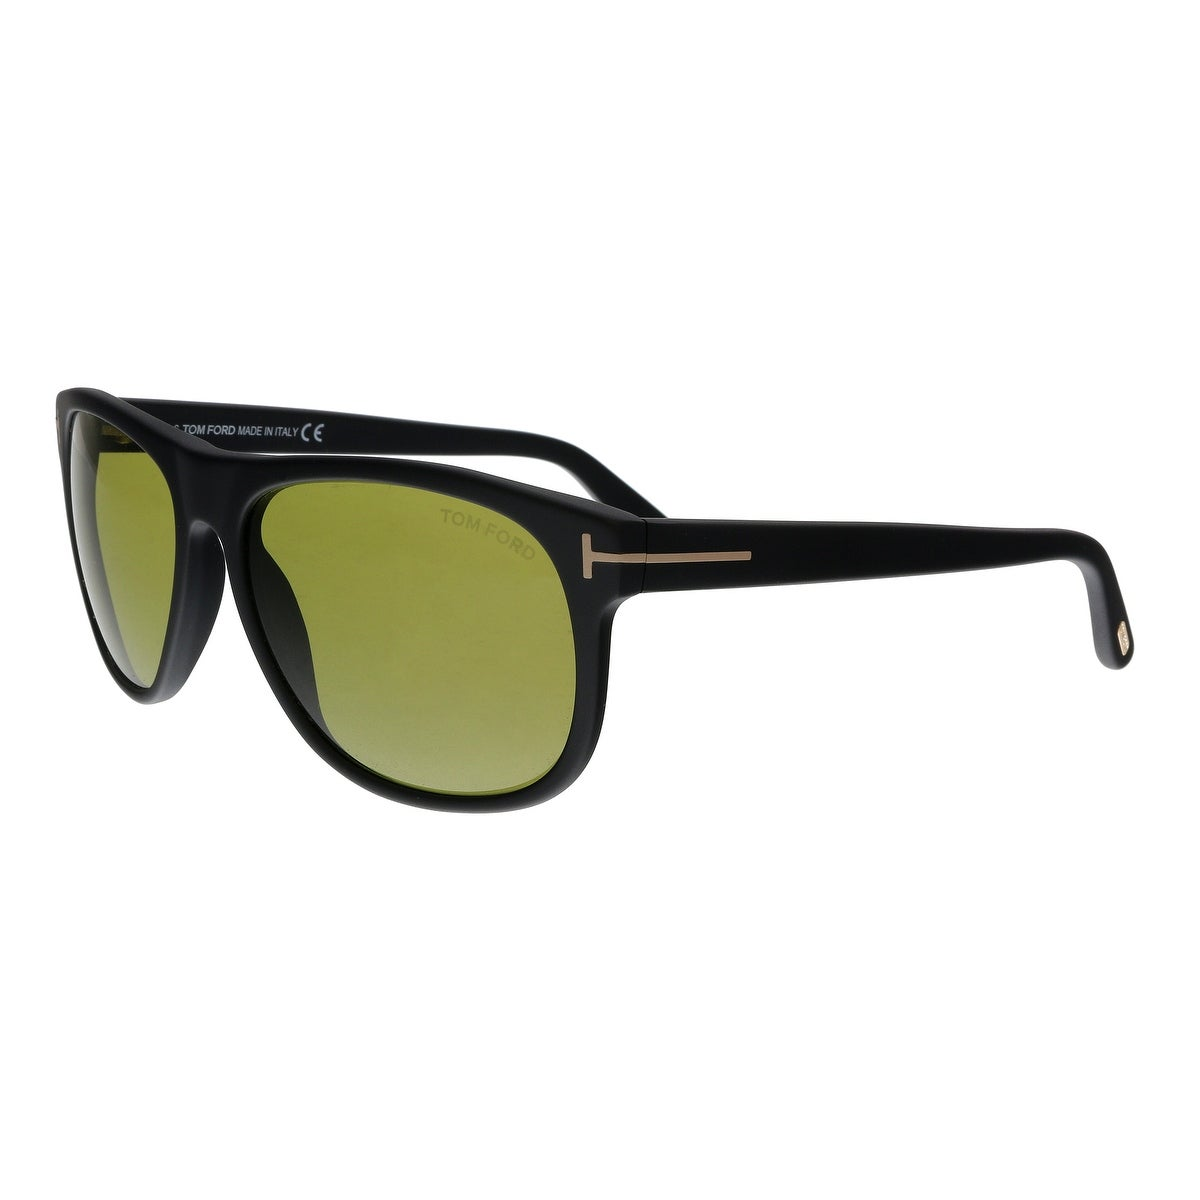 7a13227e5a4 Tom Ford Men s Sunglasses